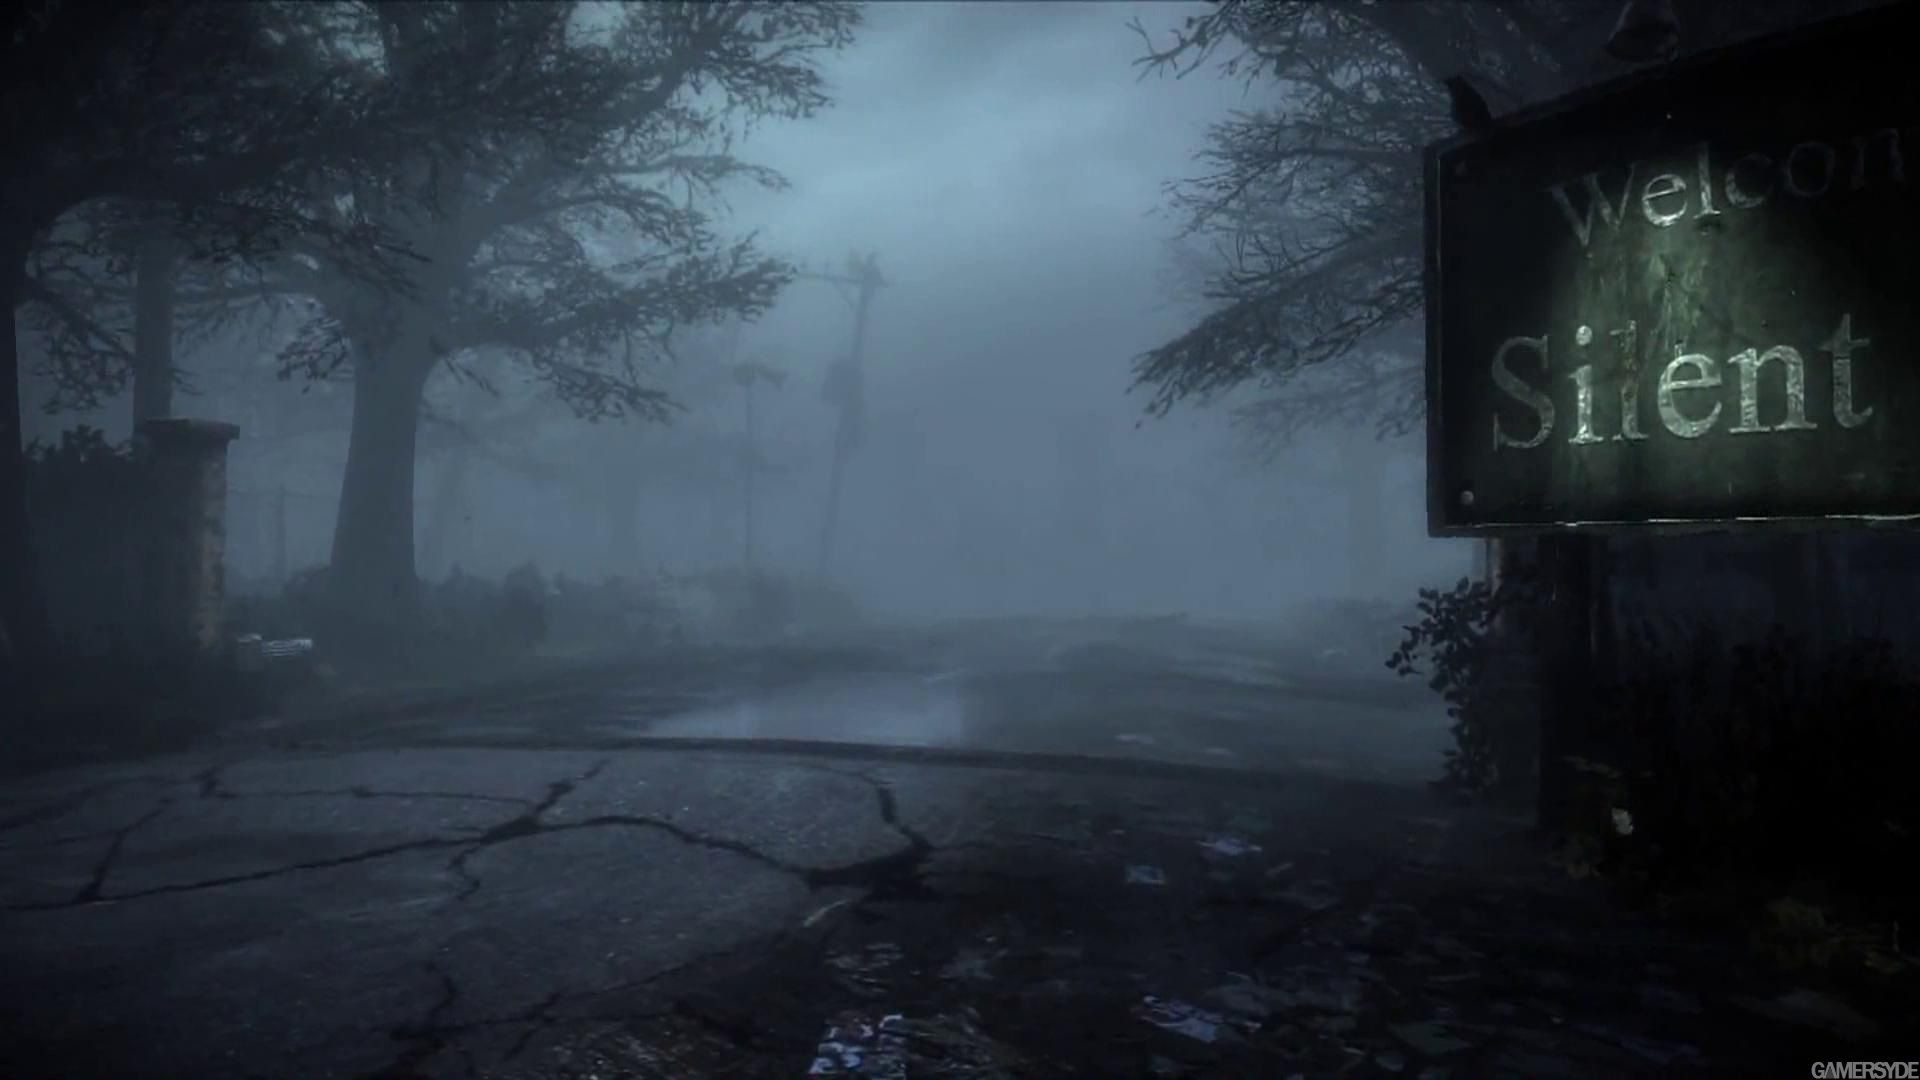 Silent Hill Background 70 Images